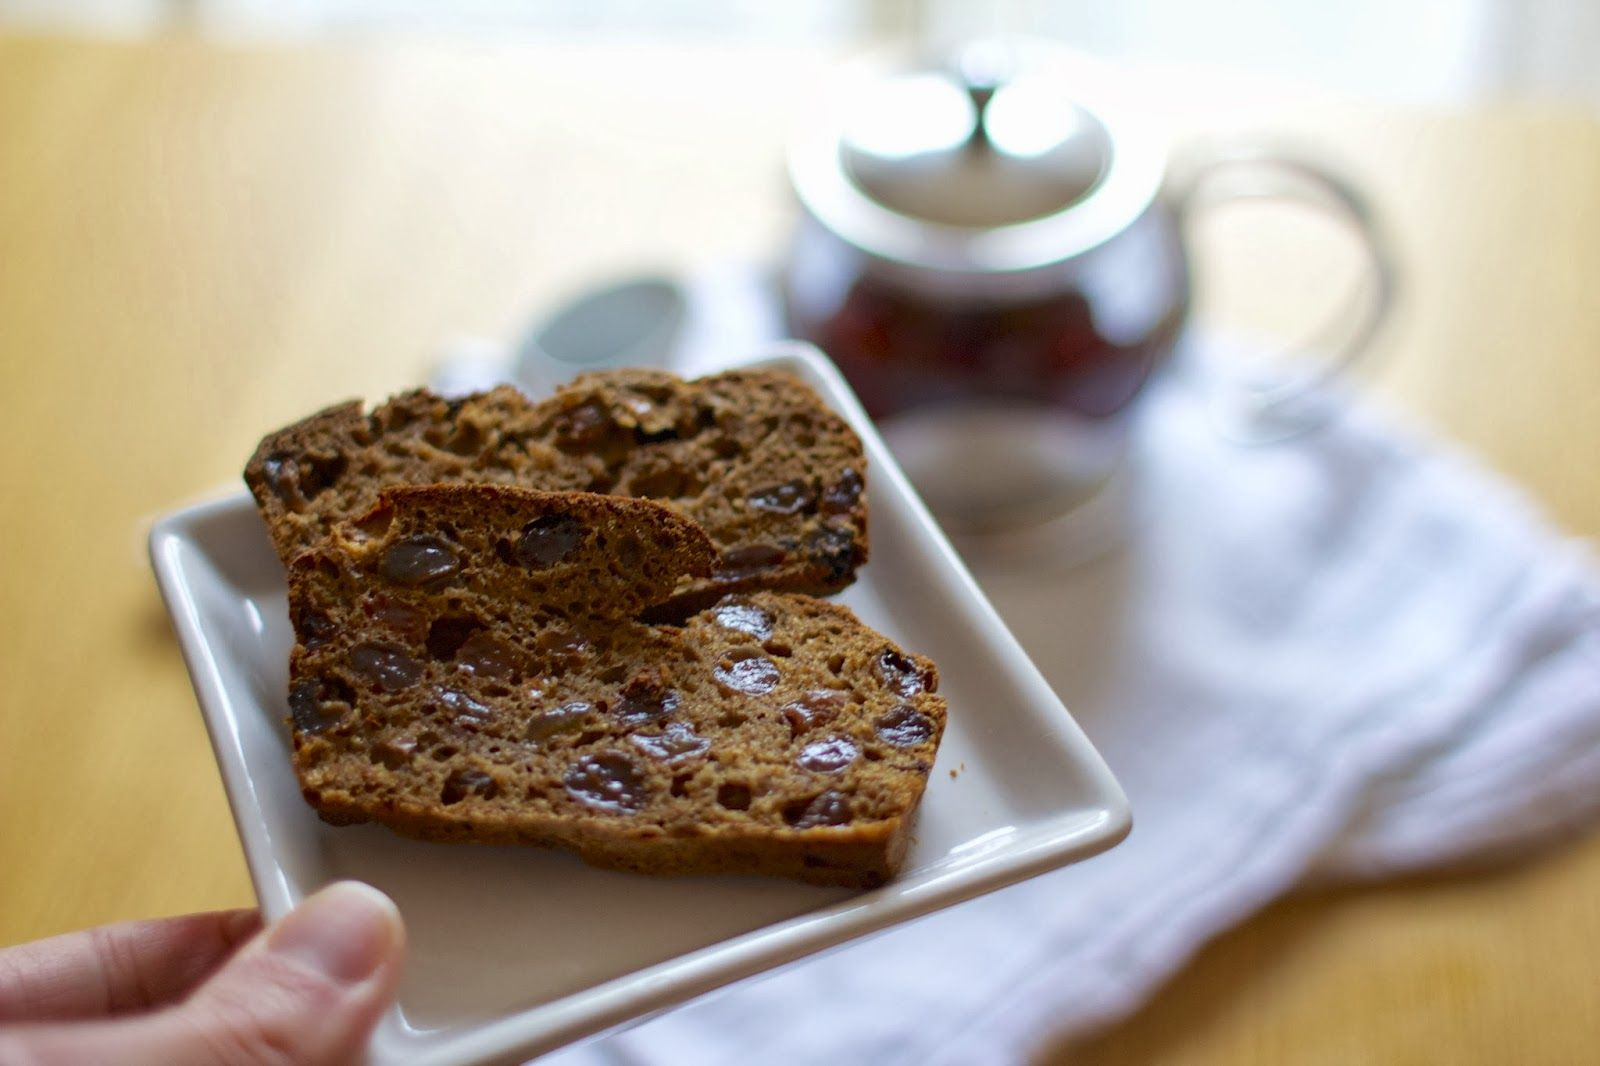 A lovely fruit and bran loaf with no dairy (also low sugar and high fibre but you'd never guess)